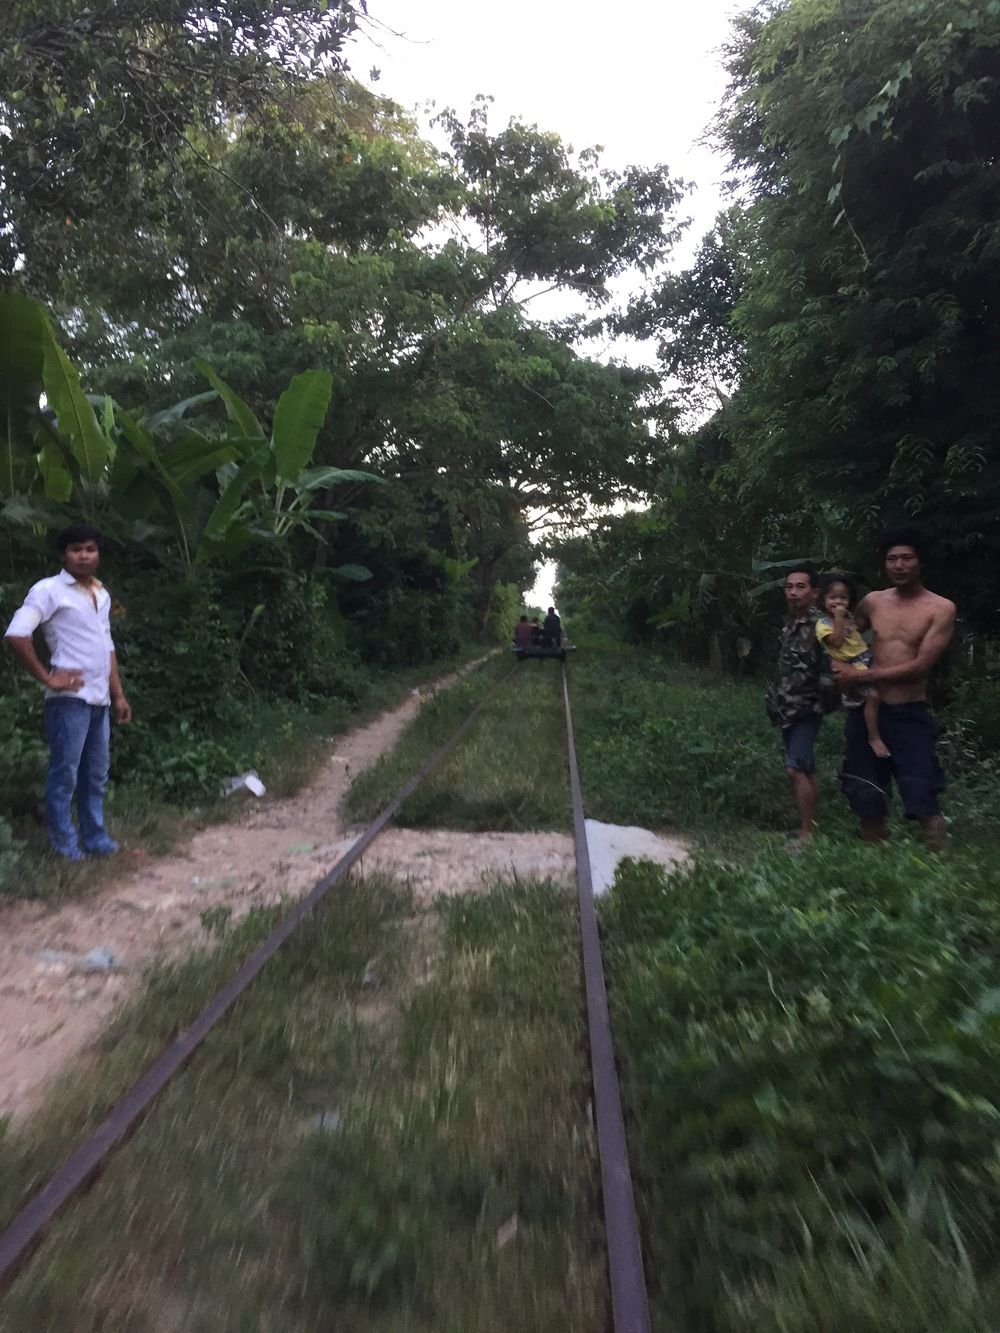 We headed down the tracks just before sunset, saying hello to the locals, and noting tree branches full of spiders above.